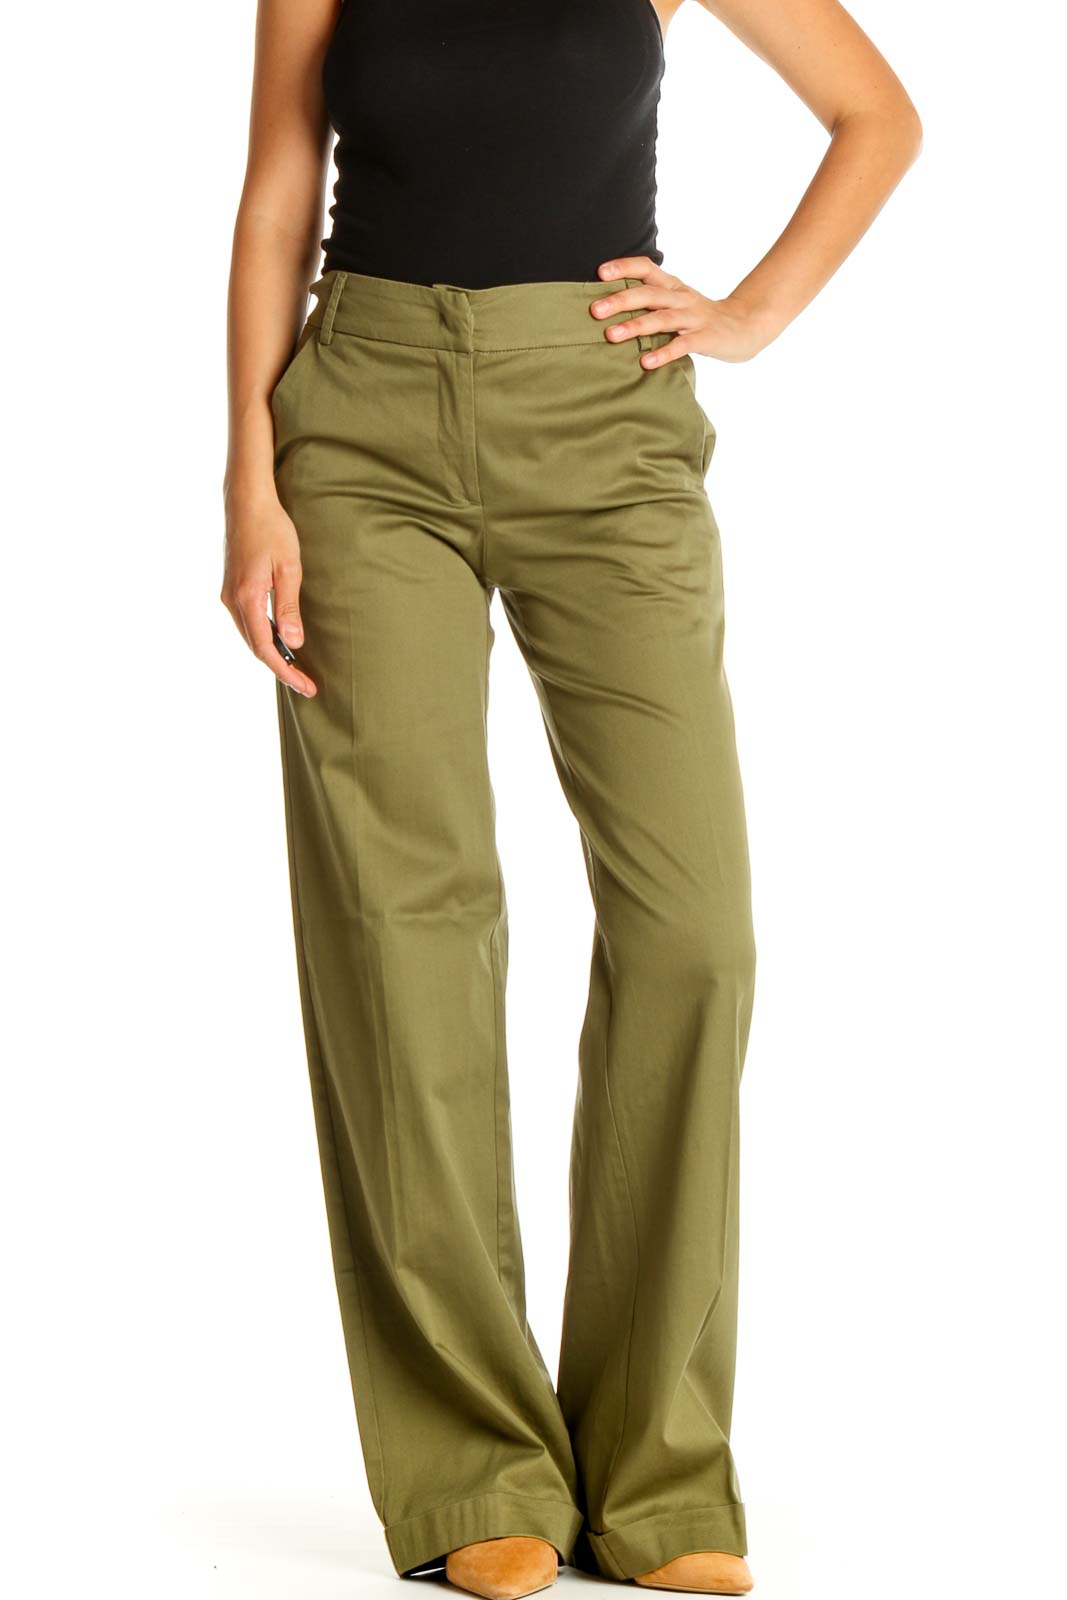 Green Solid Casual Pants Front